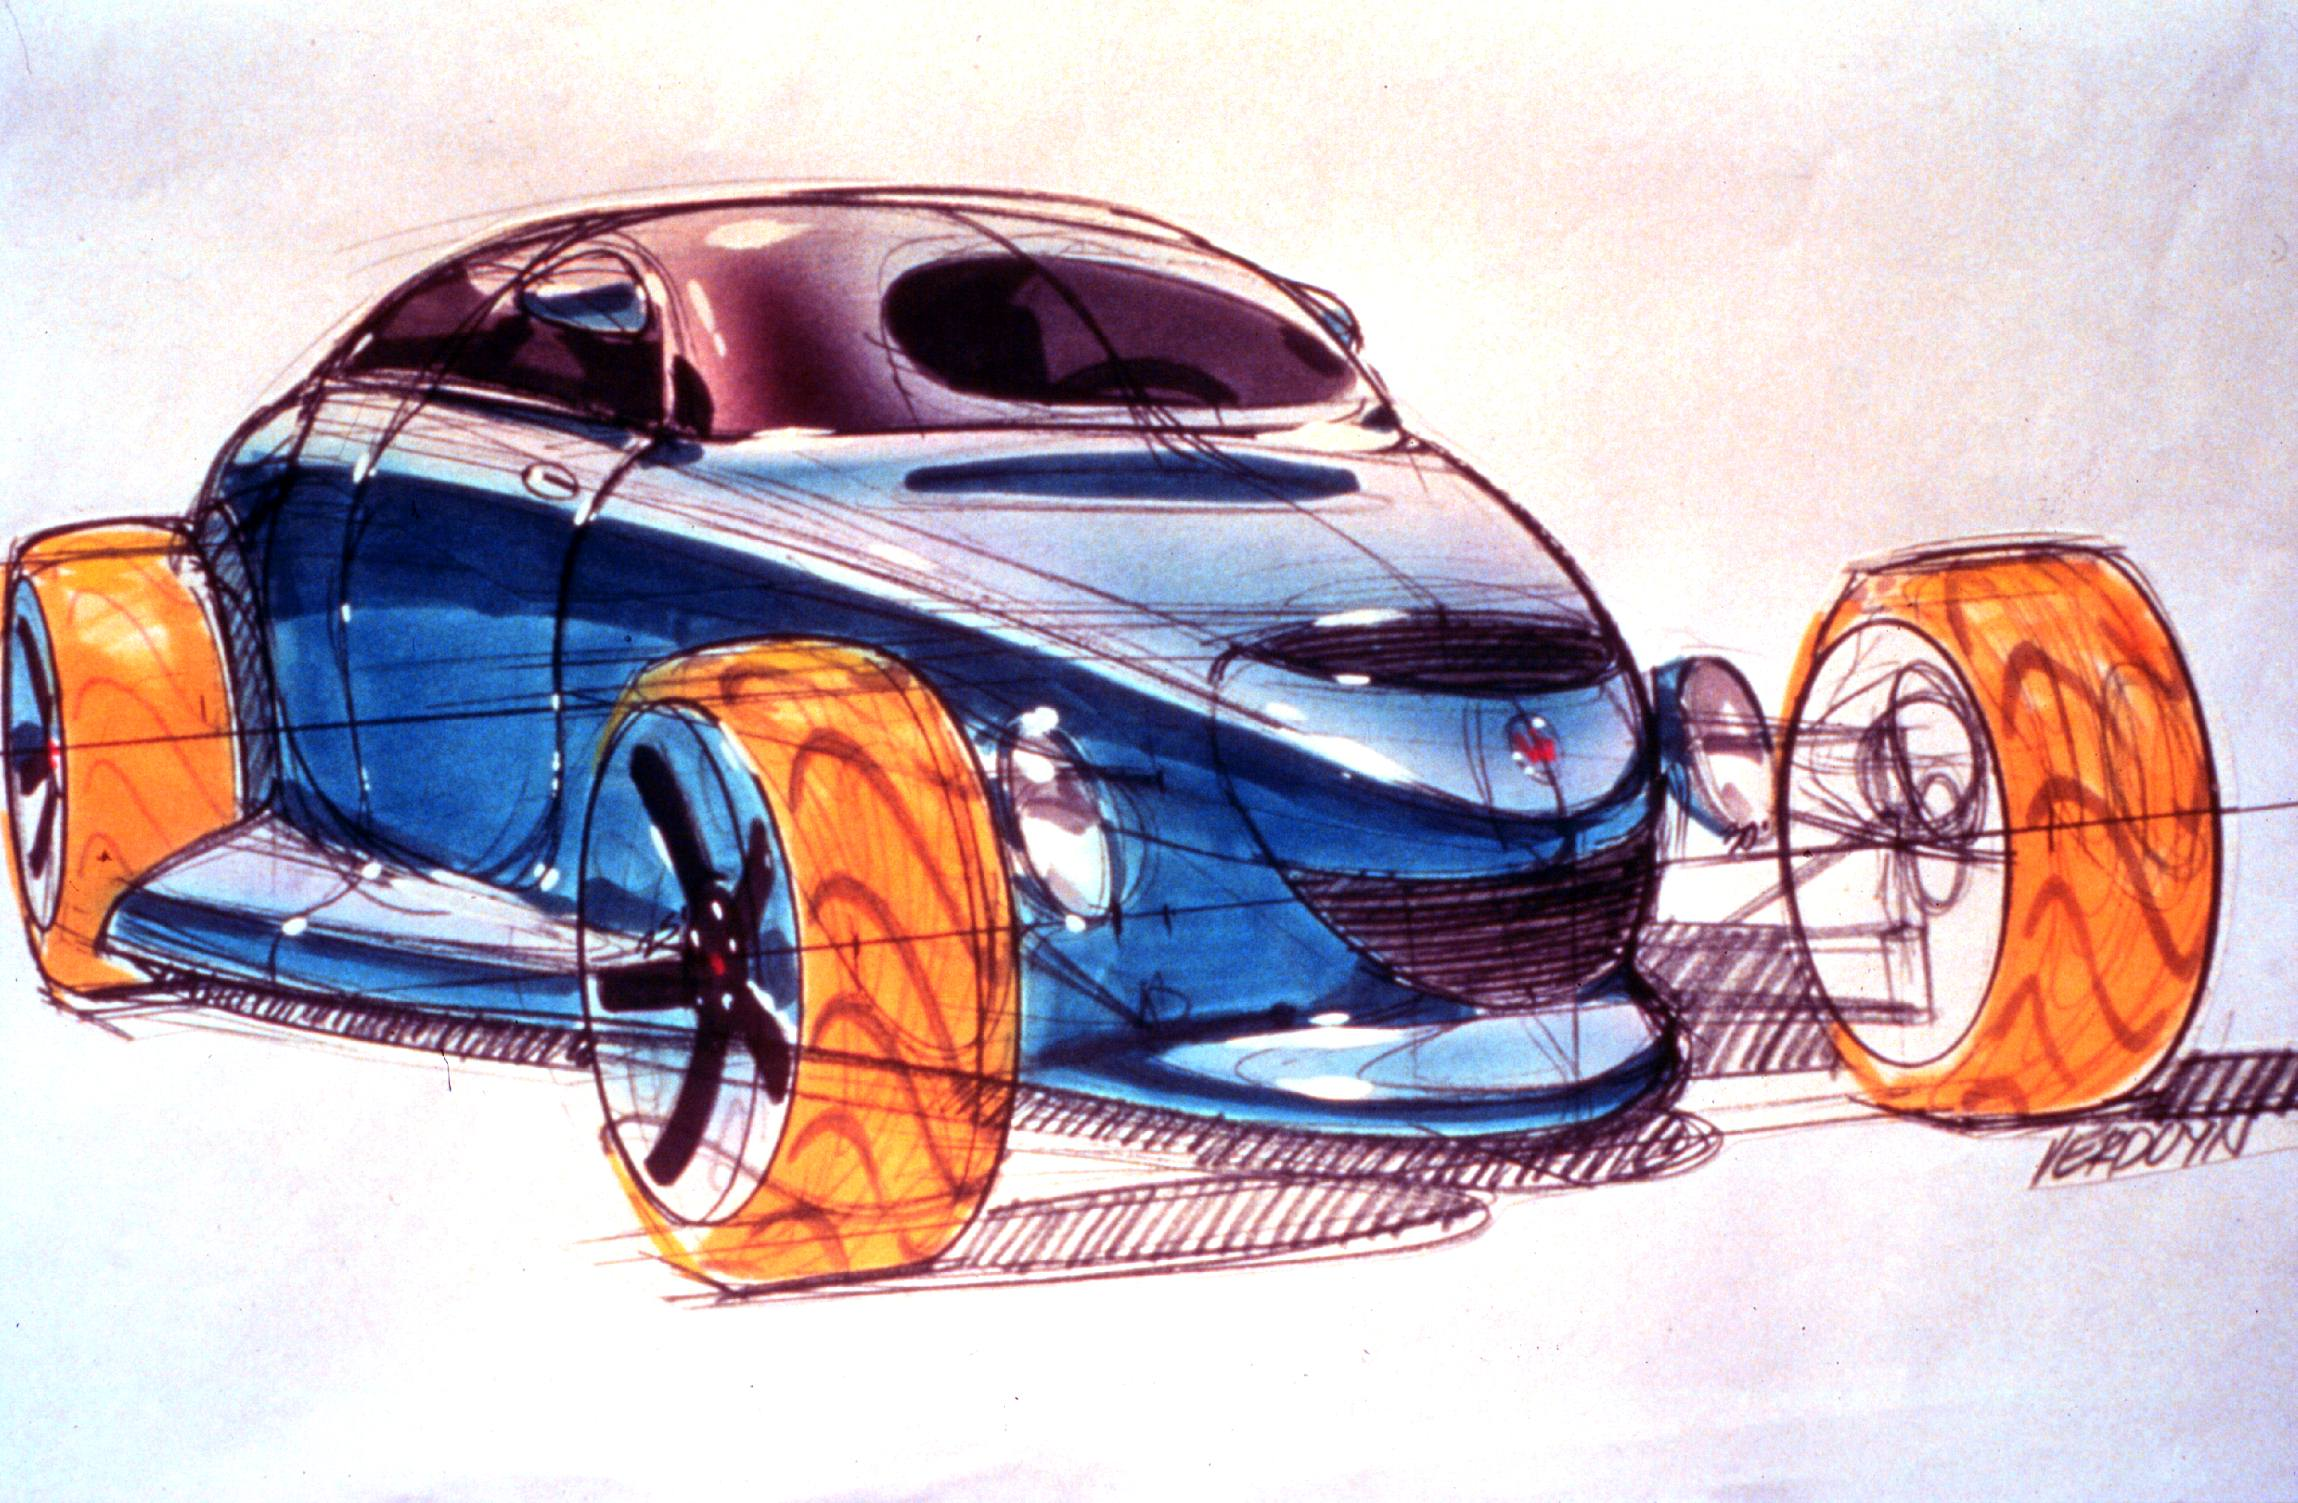 Kevin Verduyn, at Chrysler's Pacifica studio, handled the Prowler's design. His early renderings included an even more radical-looking coupe.